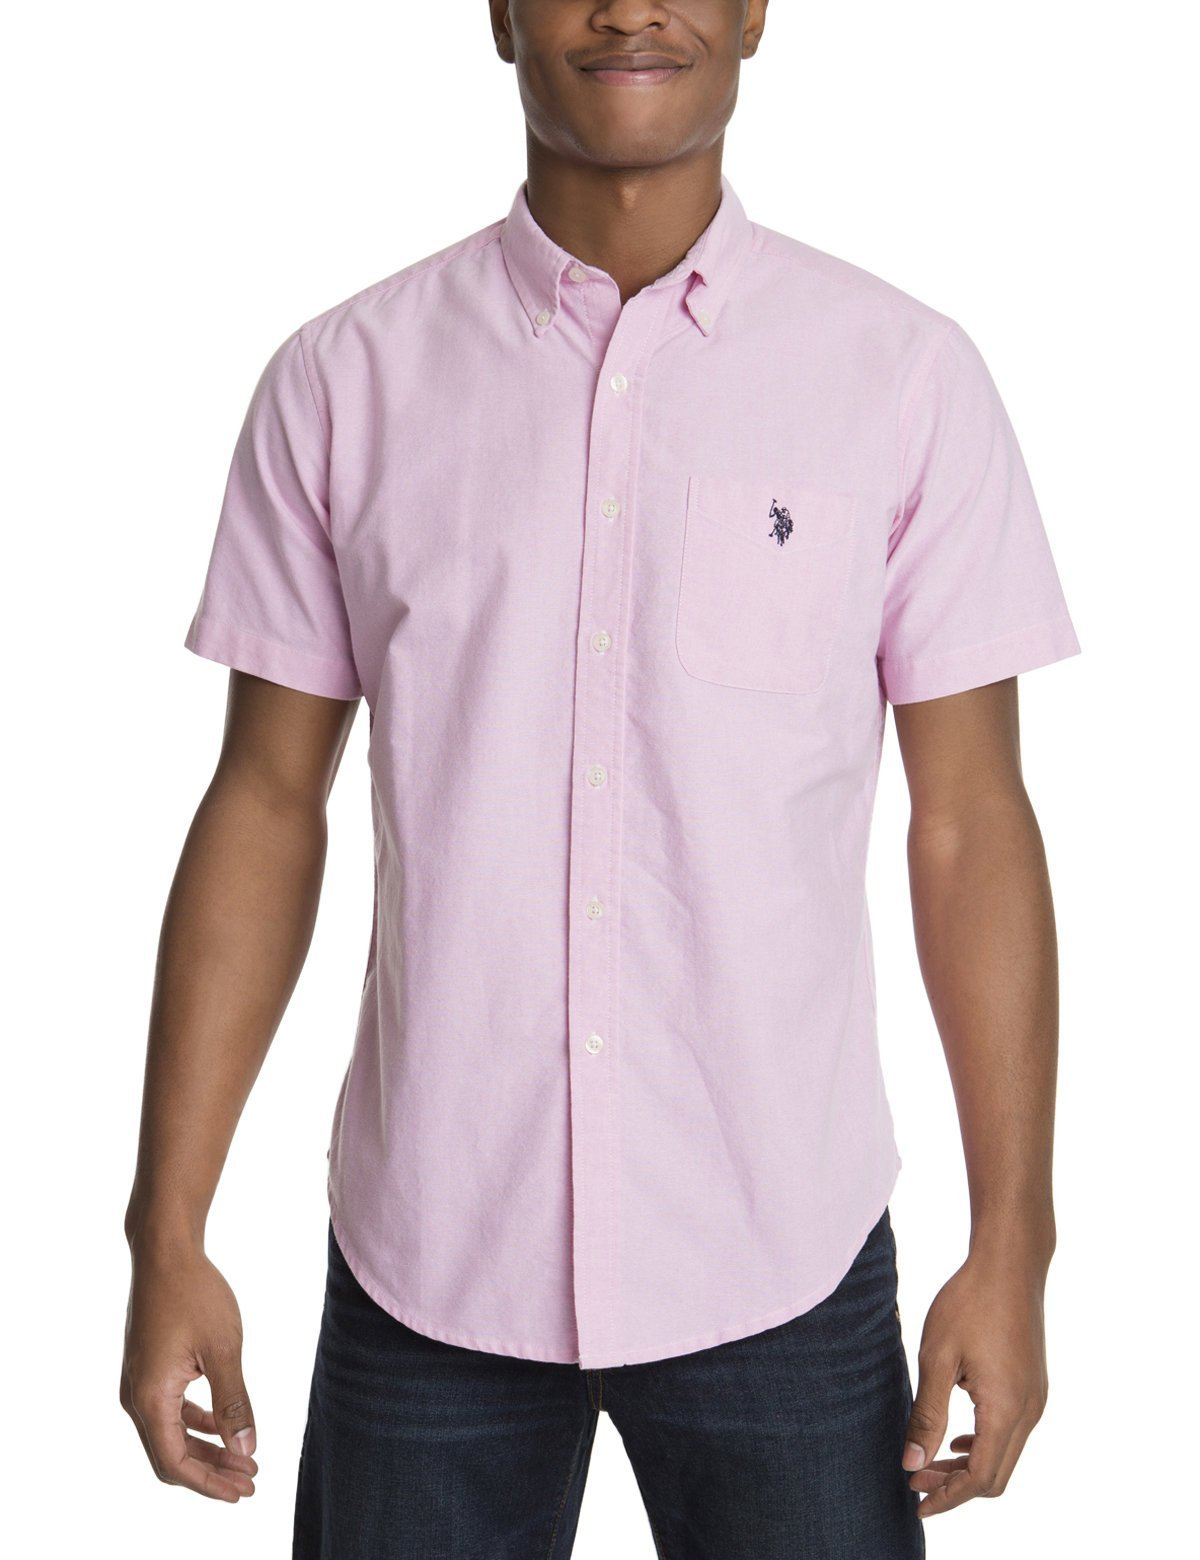 SHORT SLEEVE SOLID OXFORD - U.S. Polo Assn.